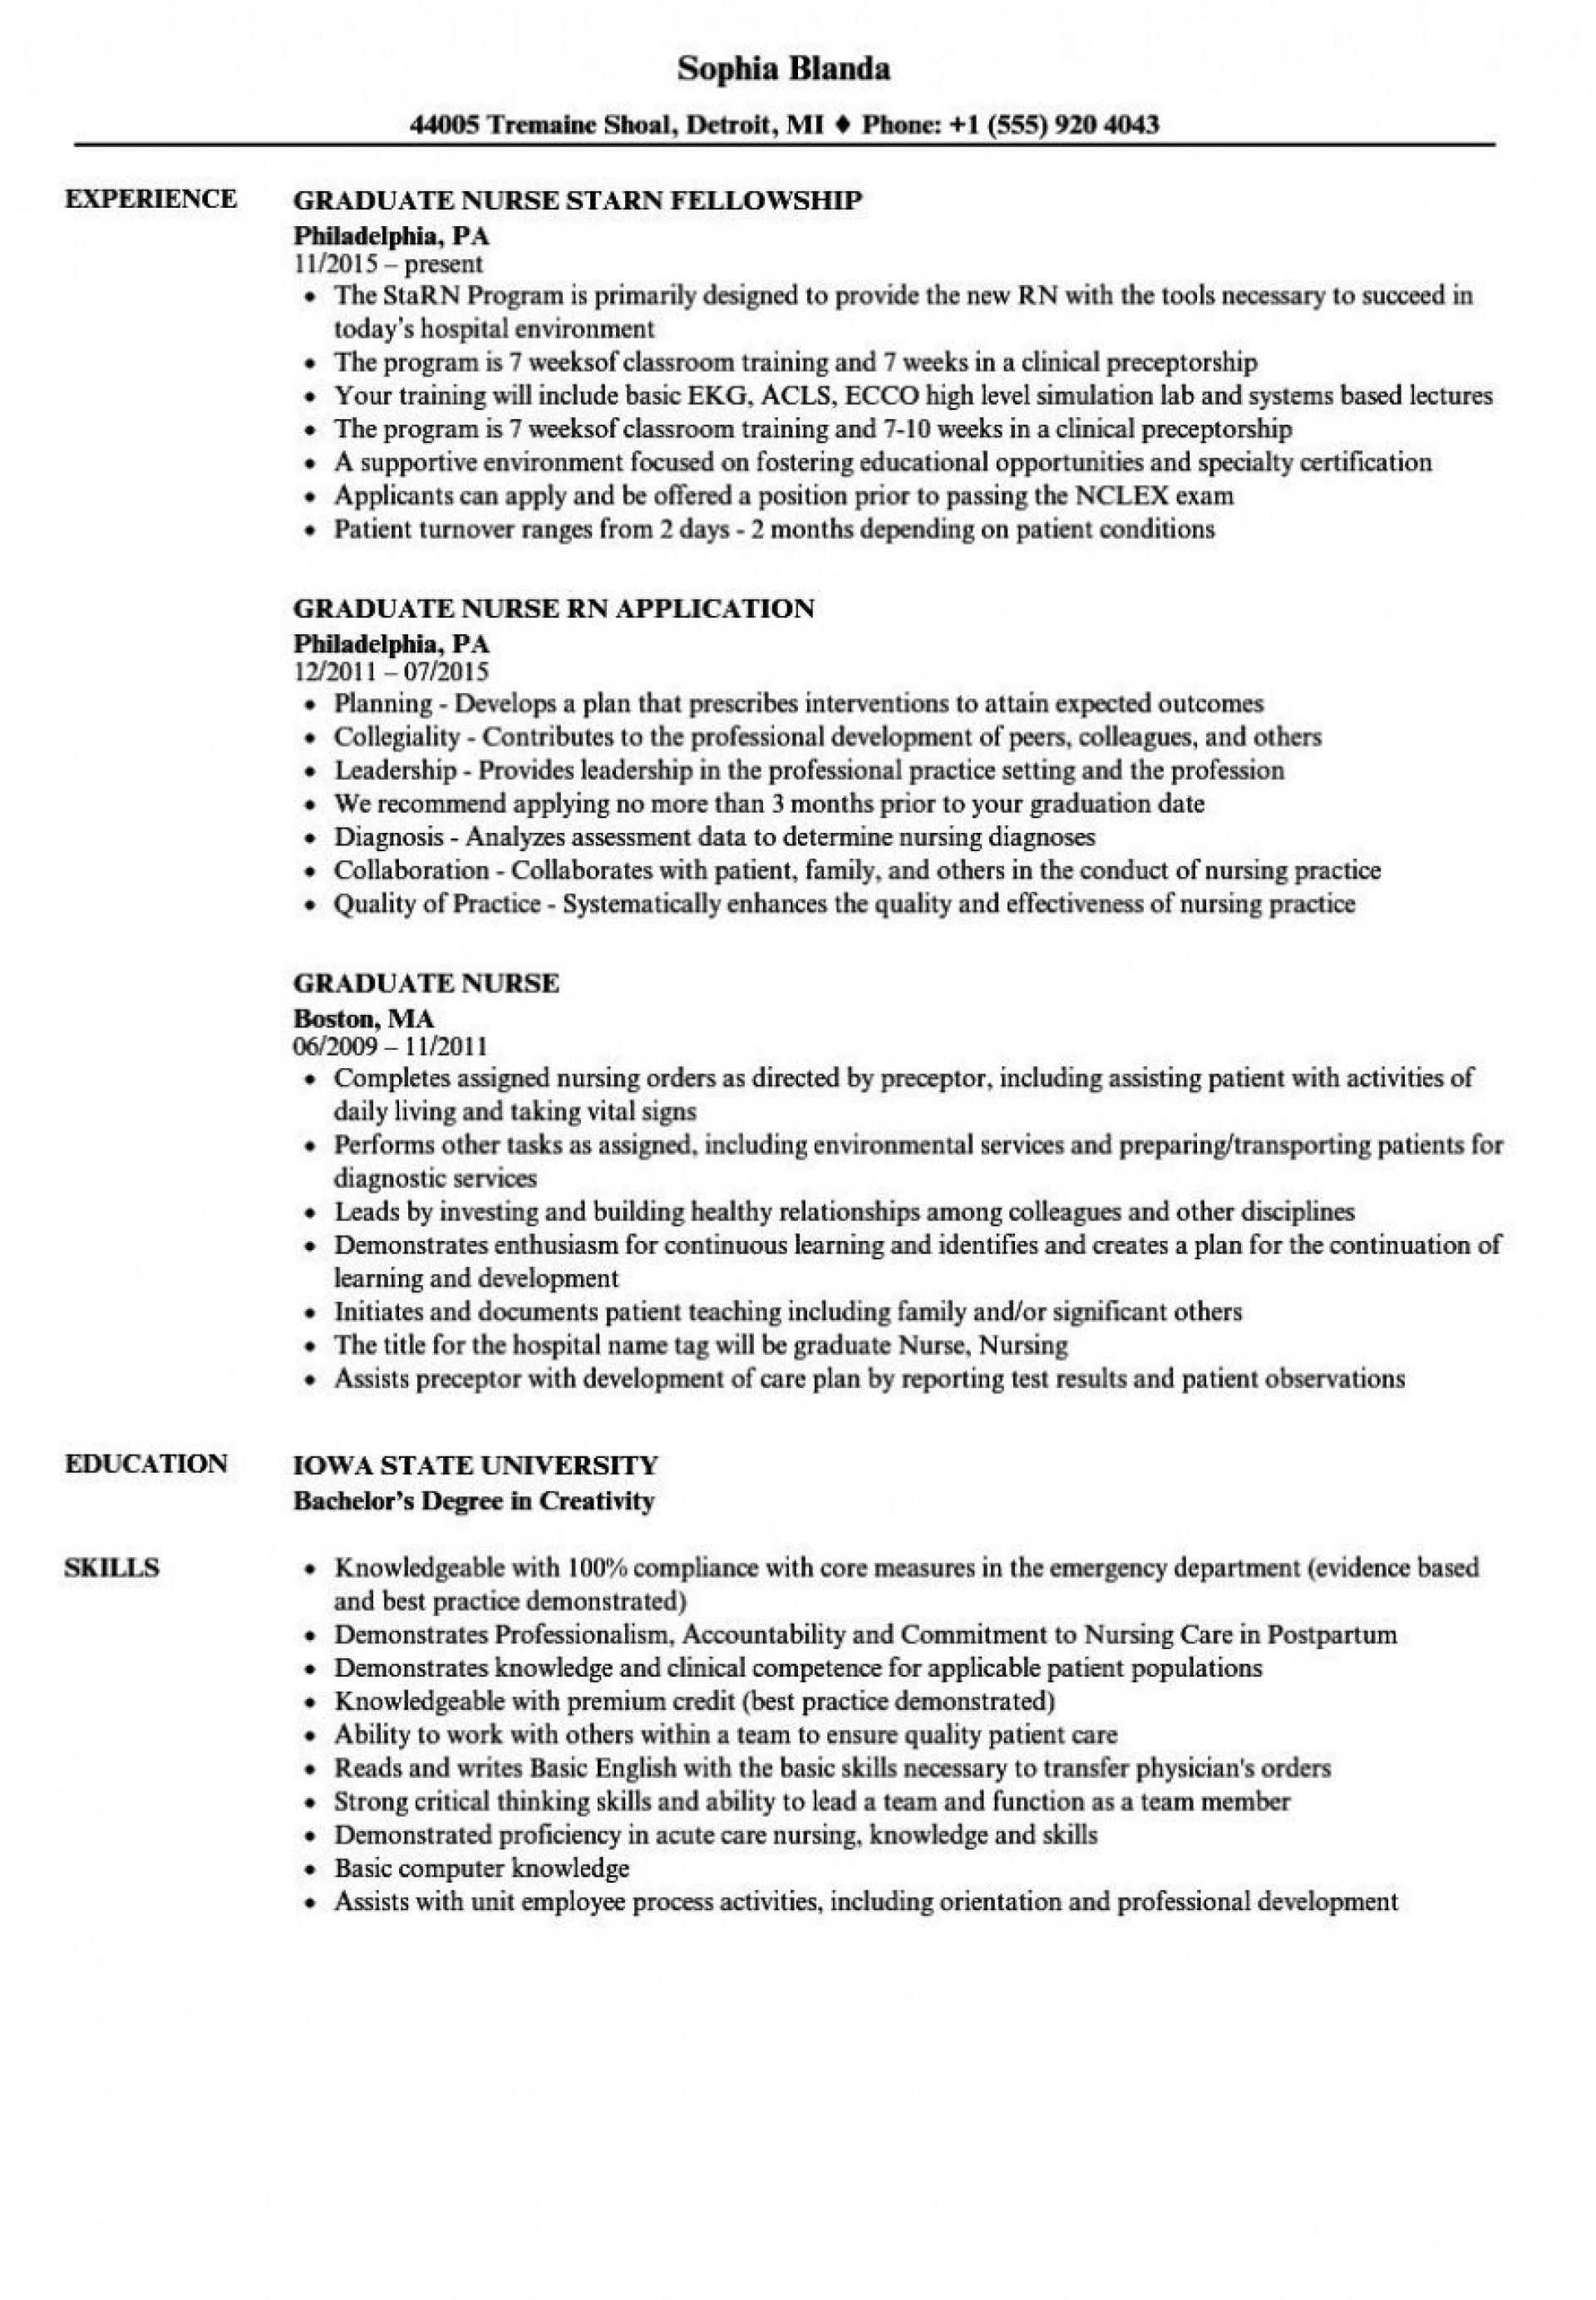 000 Impressive New Grad Nursing Resume Template Example  Graduate Nurse Practitioner1920